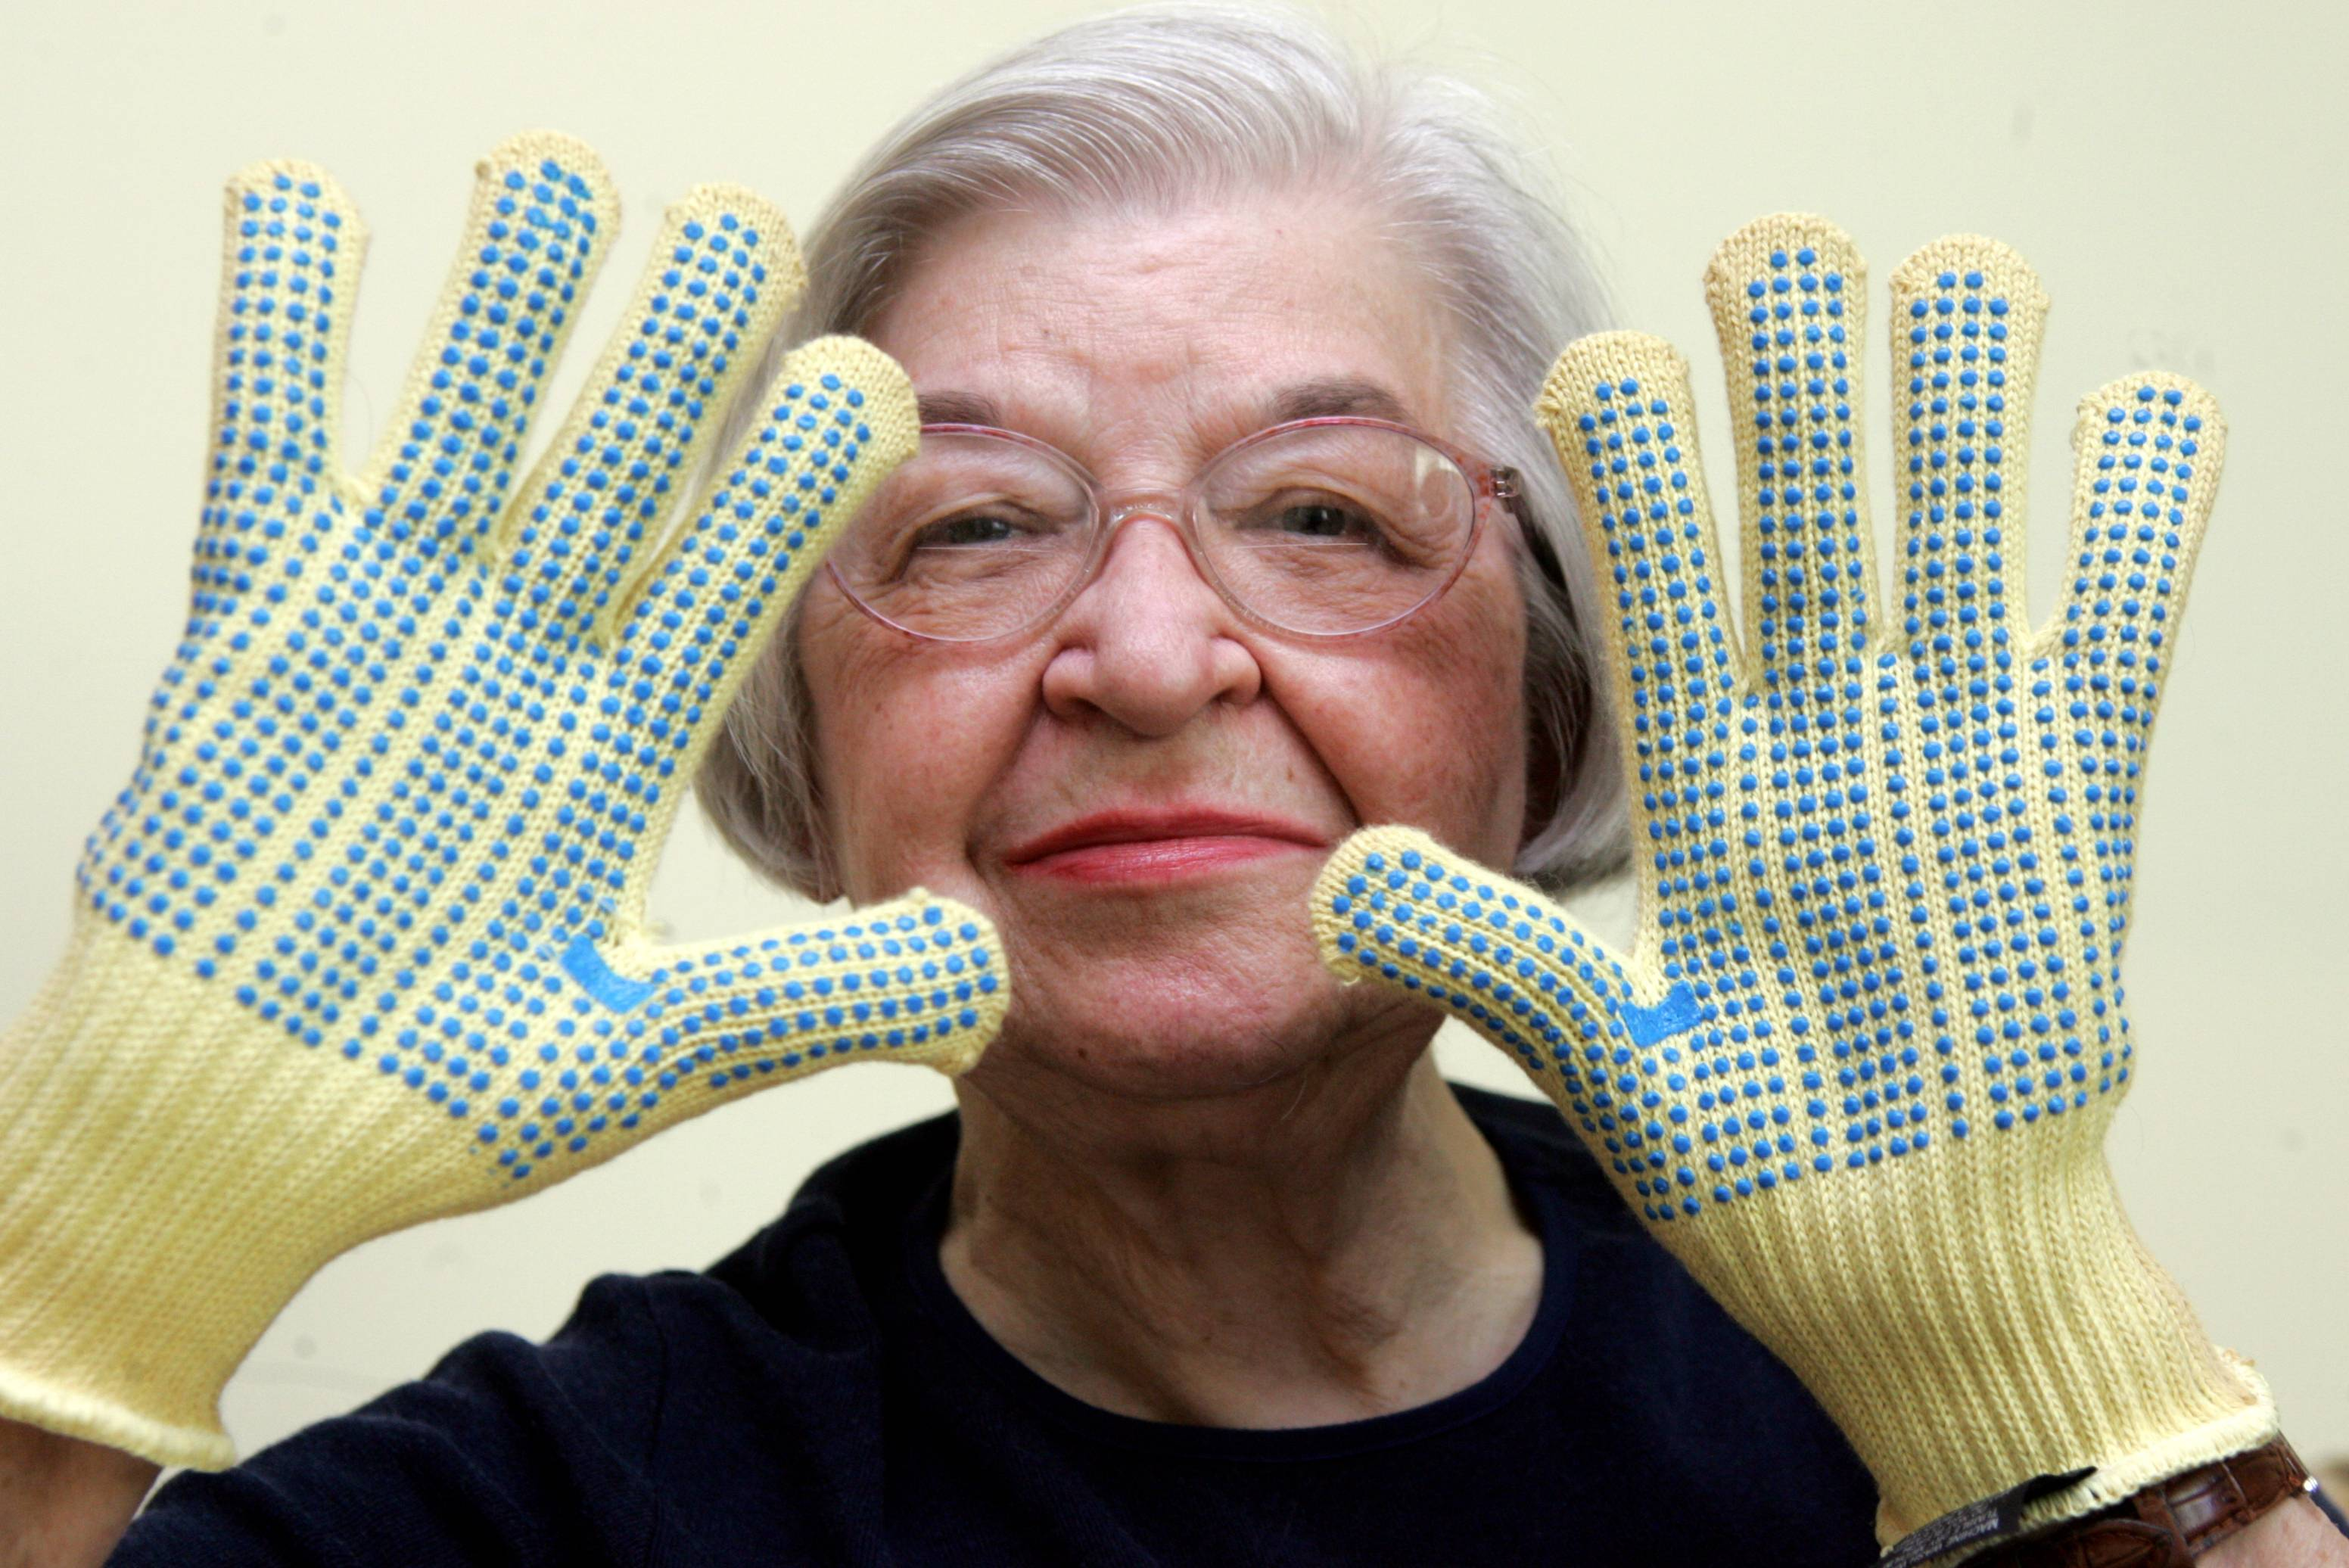 Stephanie Kwolek, 83, wears regular house gloves made with the Kevlar she invented.